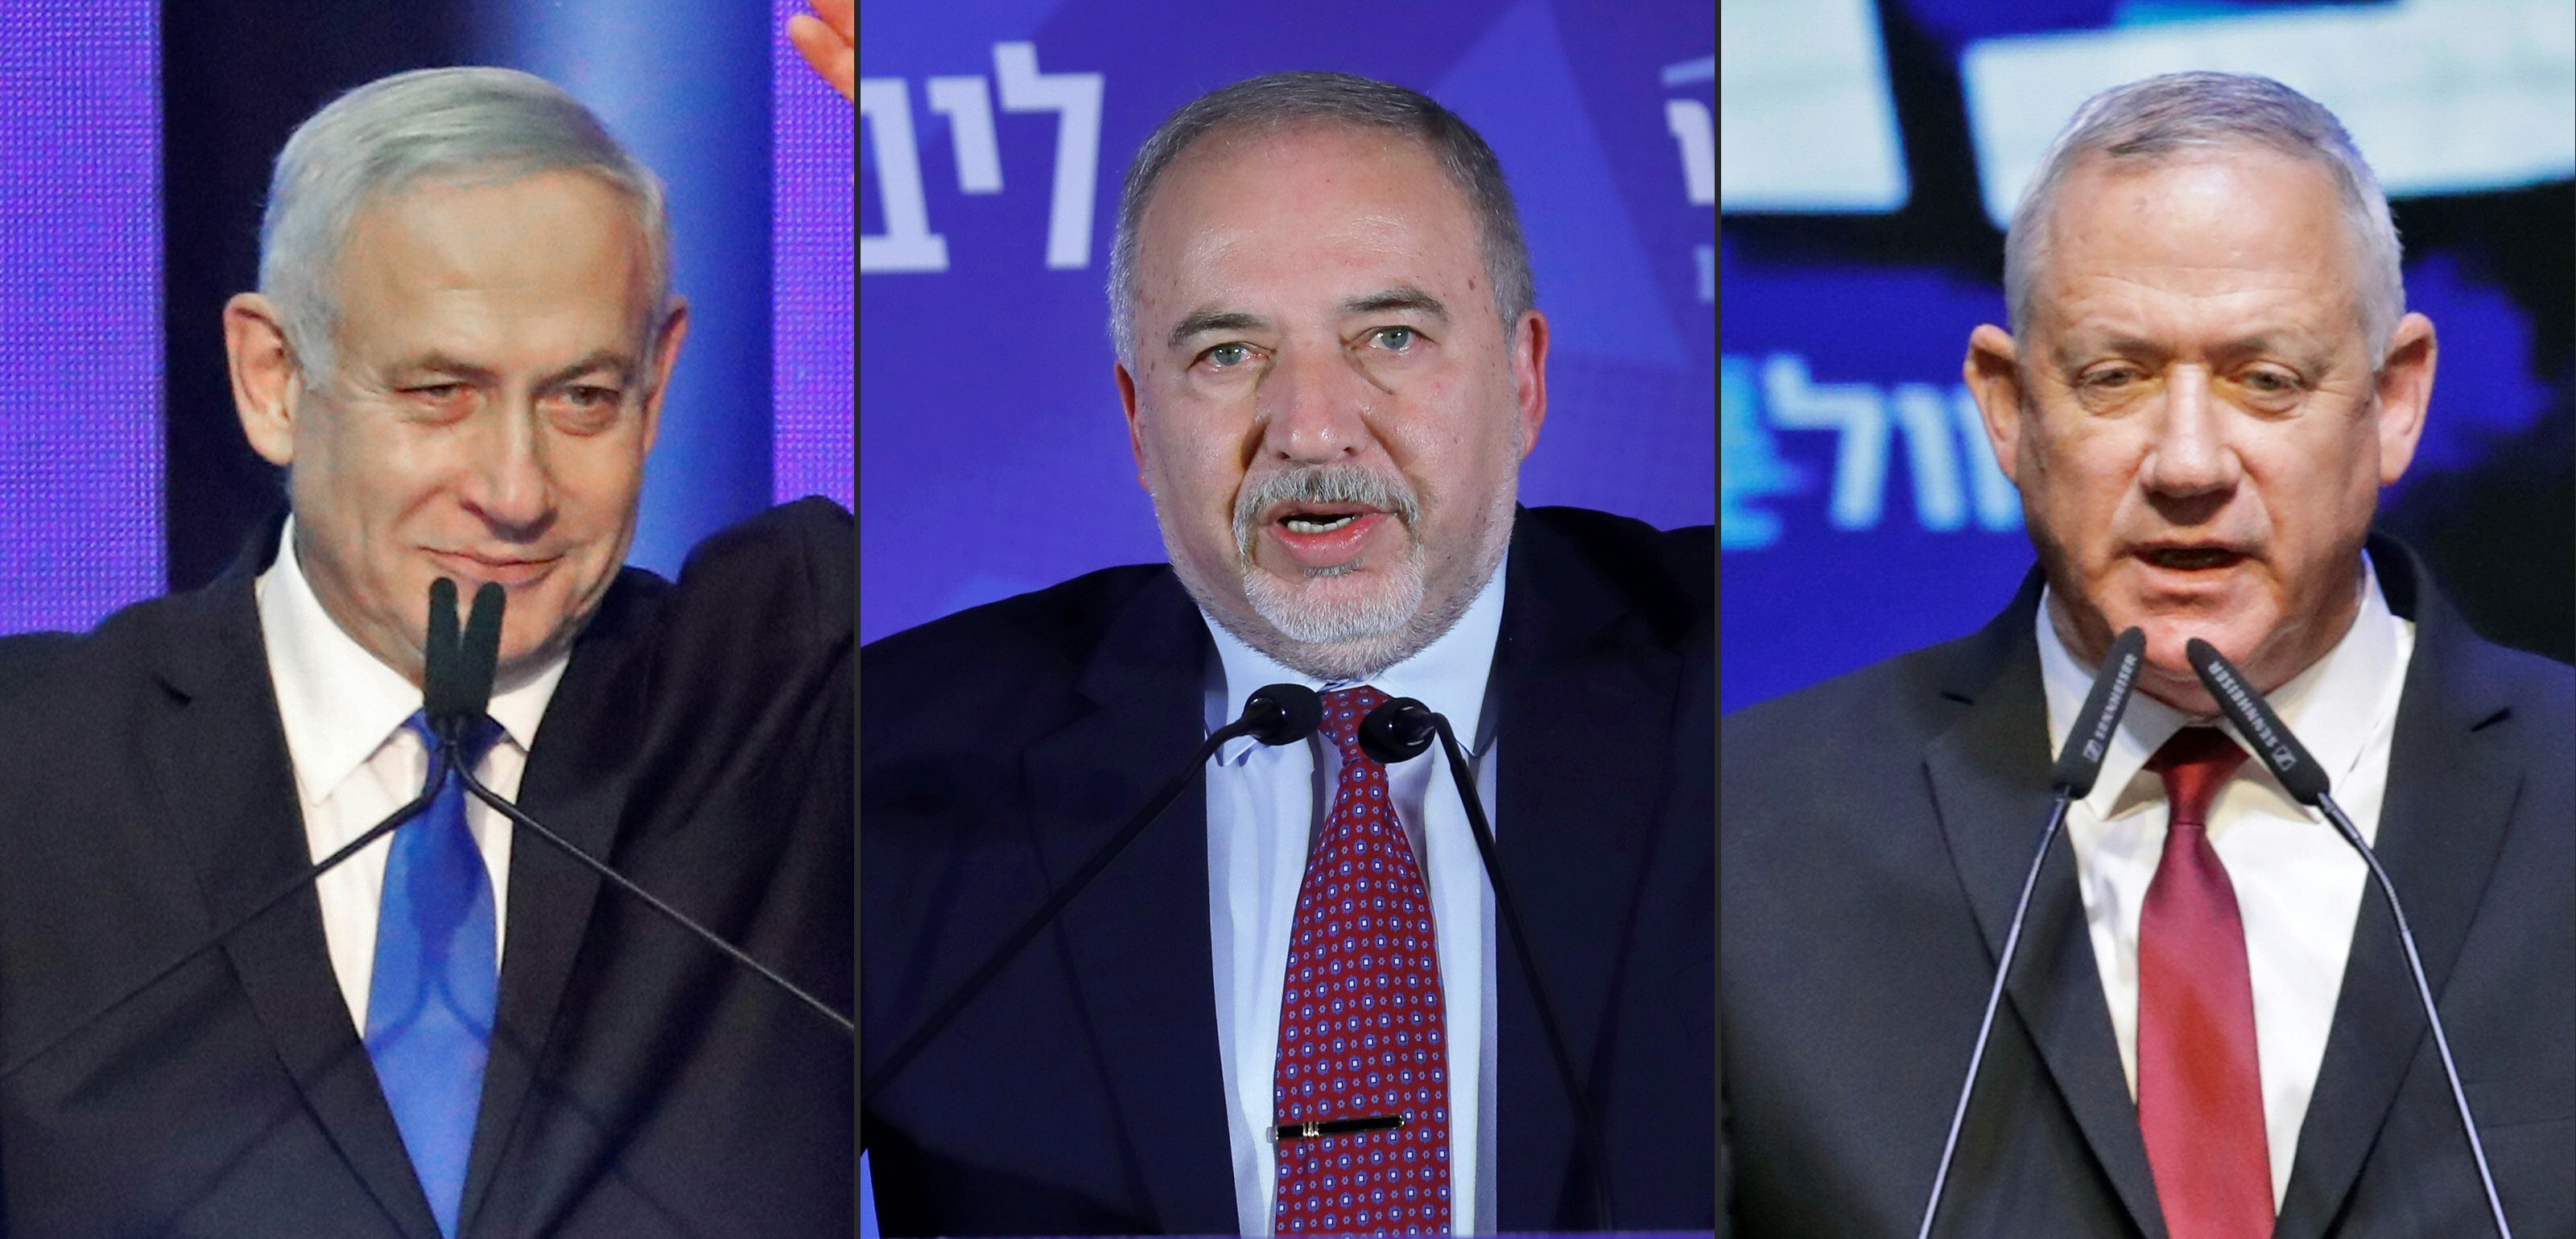 Israeli Prime Minister Benjamin Netanyahu, Avigdor Lieberman, leader of the Israeli nationalist Yisrael Beiteinu party and retired General Benny Gantz (AFP)